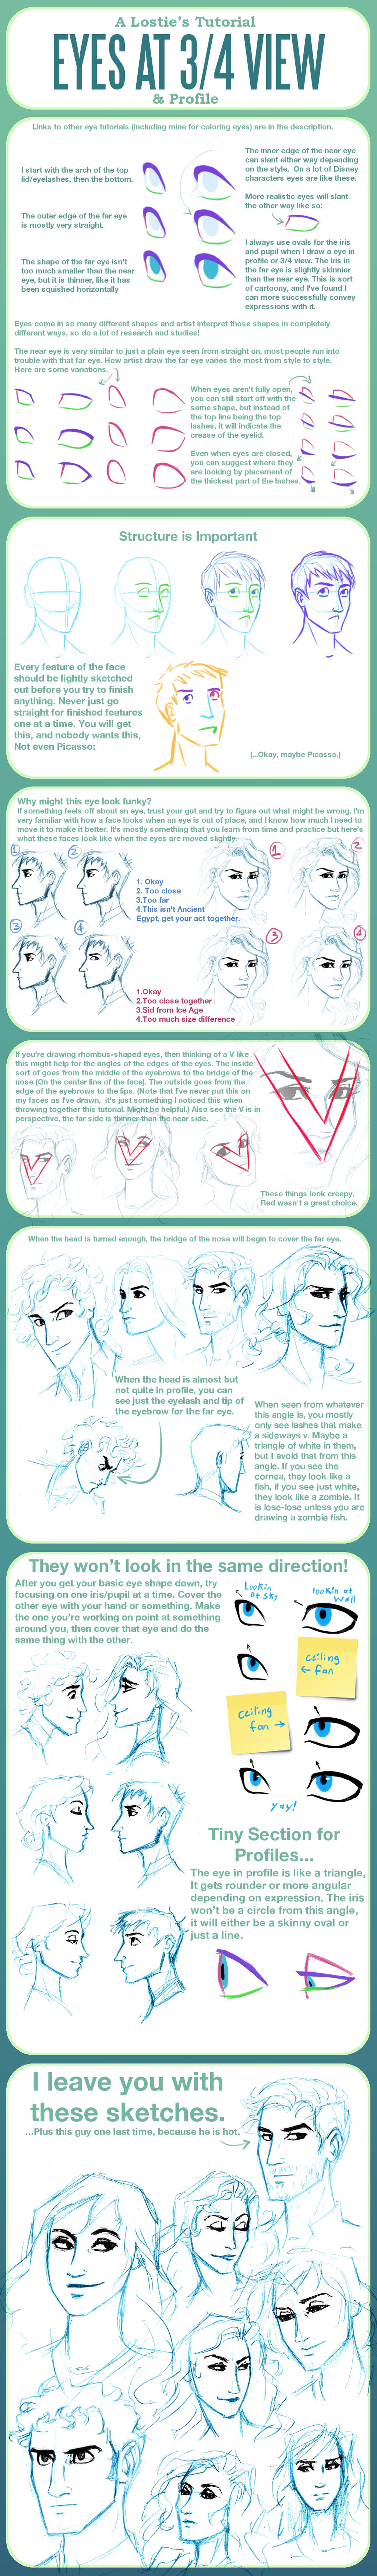 Eye Tutorial at 3/4 View and Profile by lostie815